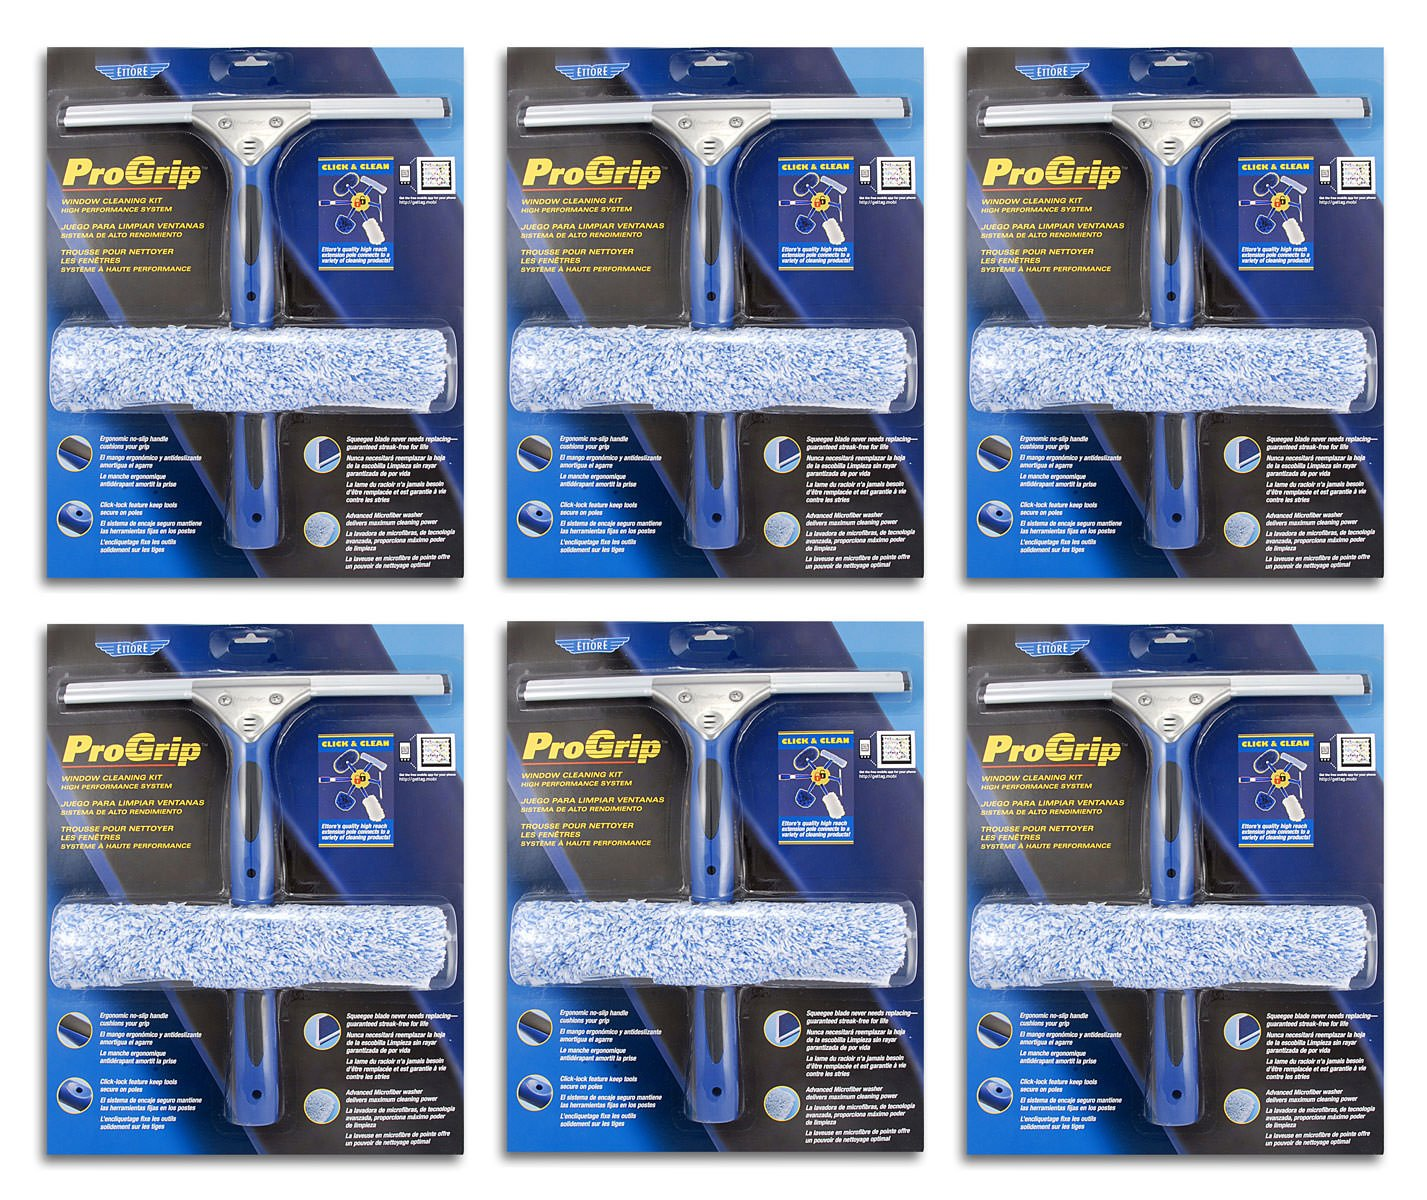 Ettore 65000 Professional Progrip Window Cleaning Kit, 6 Pack by Ettore